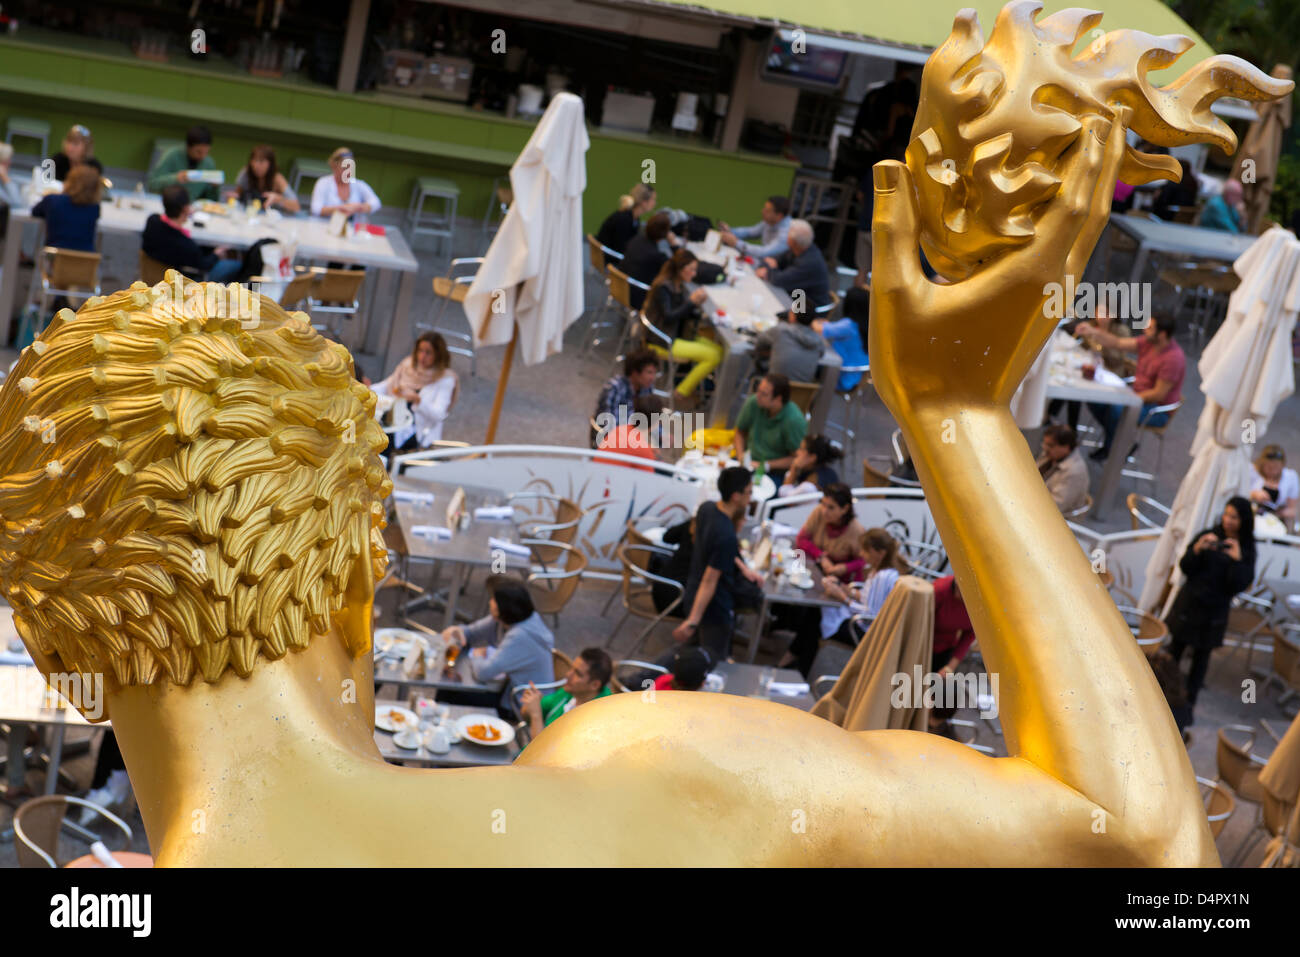 Prometheus statue from behind with diners at the Rockefeller Center. - Stock Image